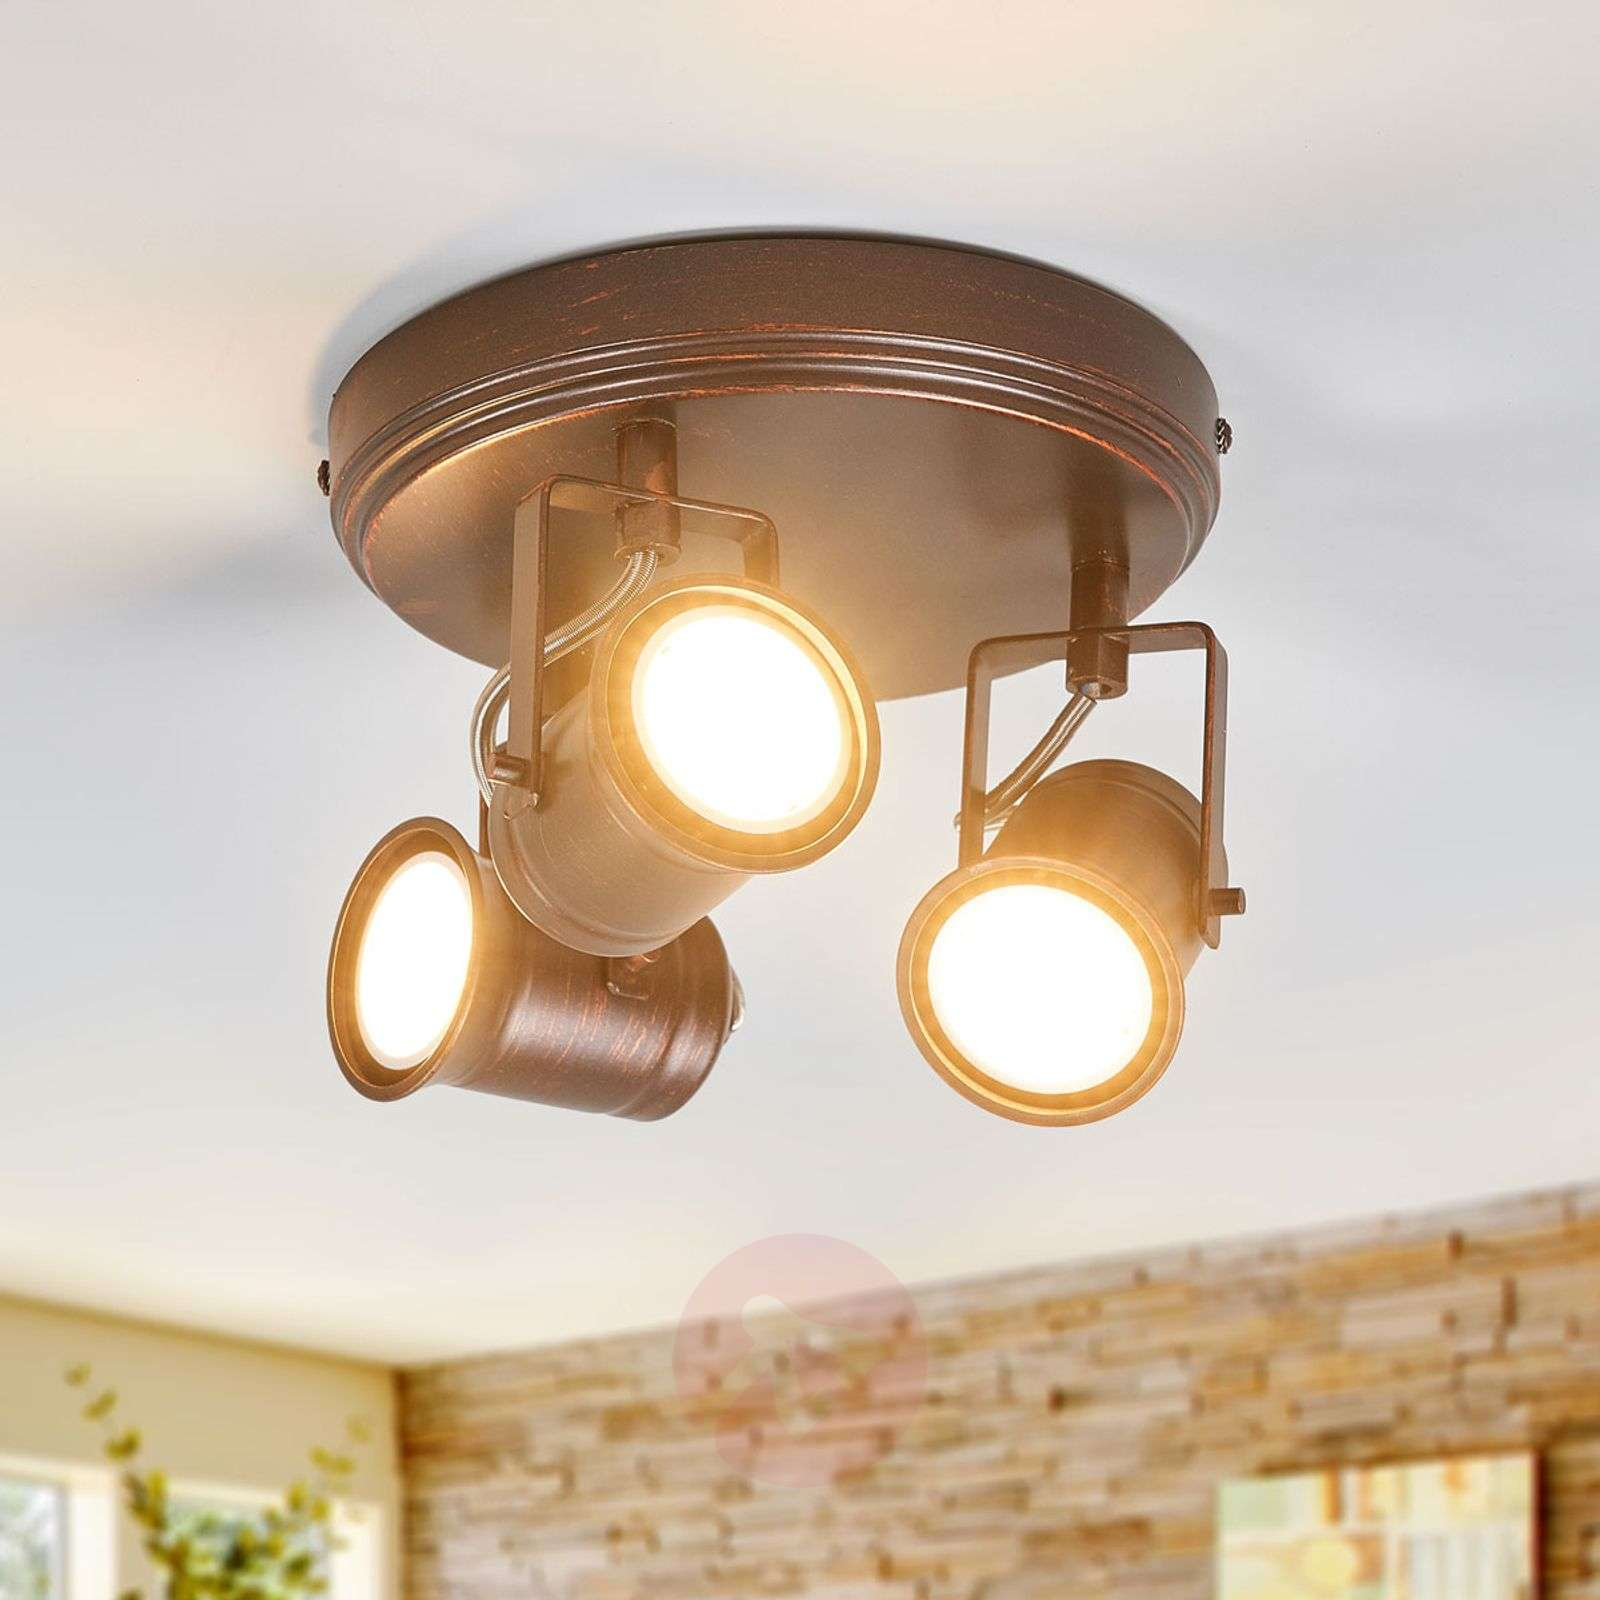 Circular spotlight Cansu in brown-gold, GU10 LED-9639076-08